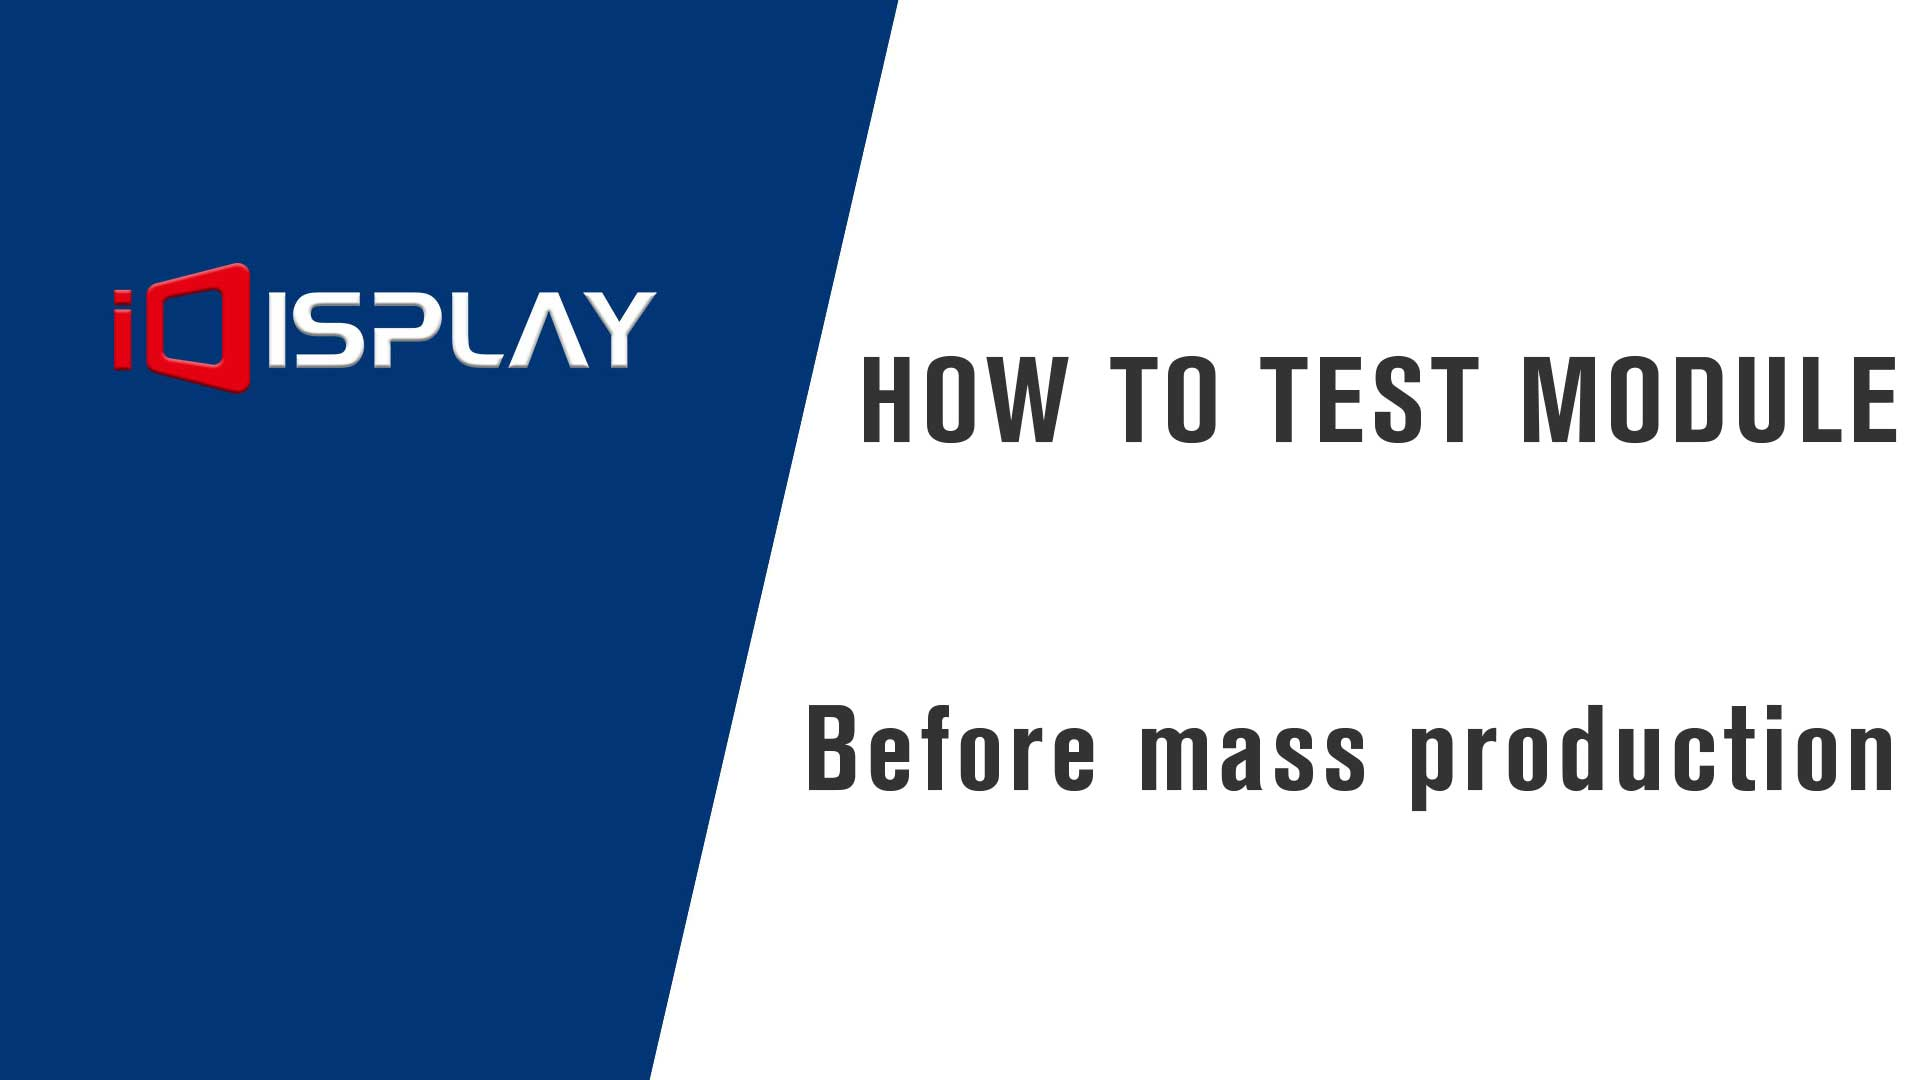 How to test modules before mass production? - idisplayled manufacture factory